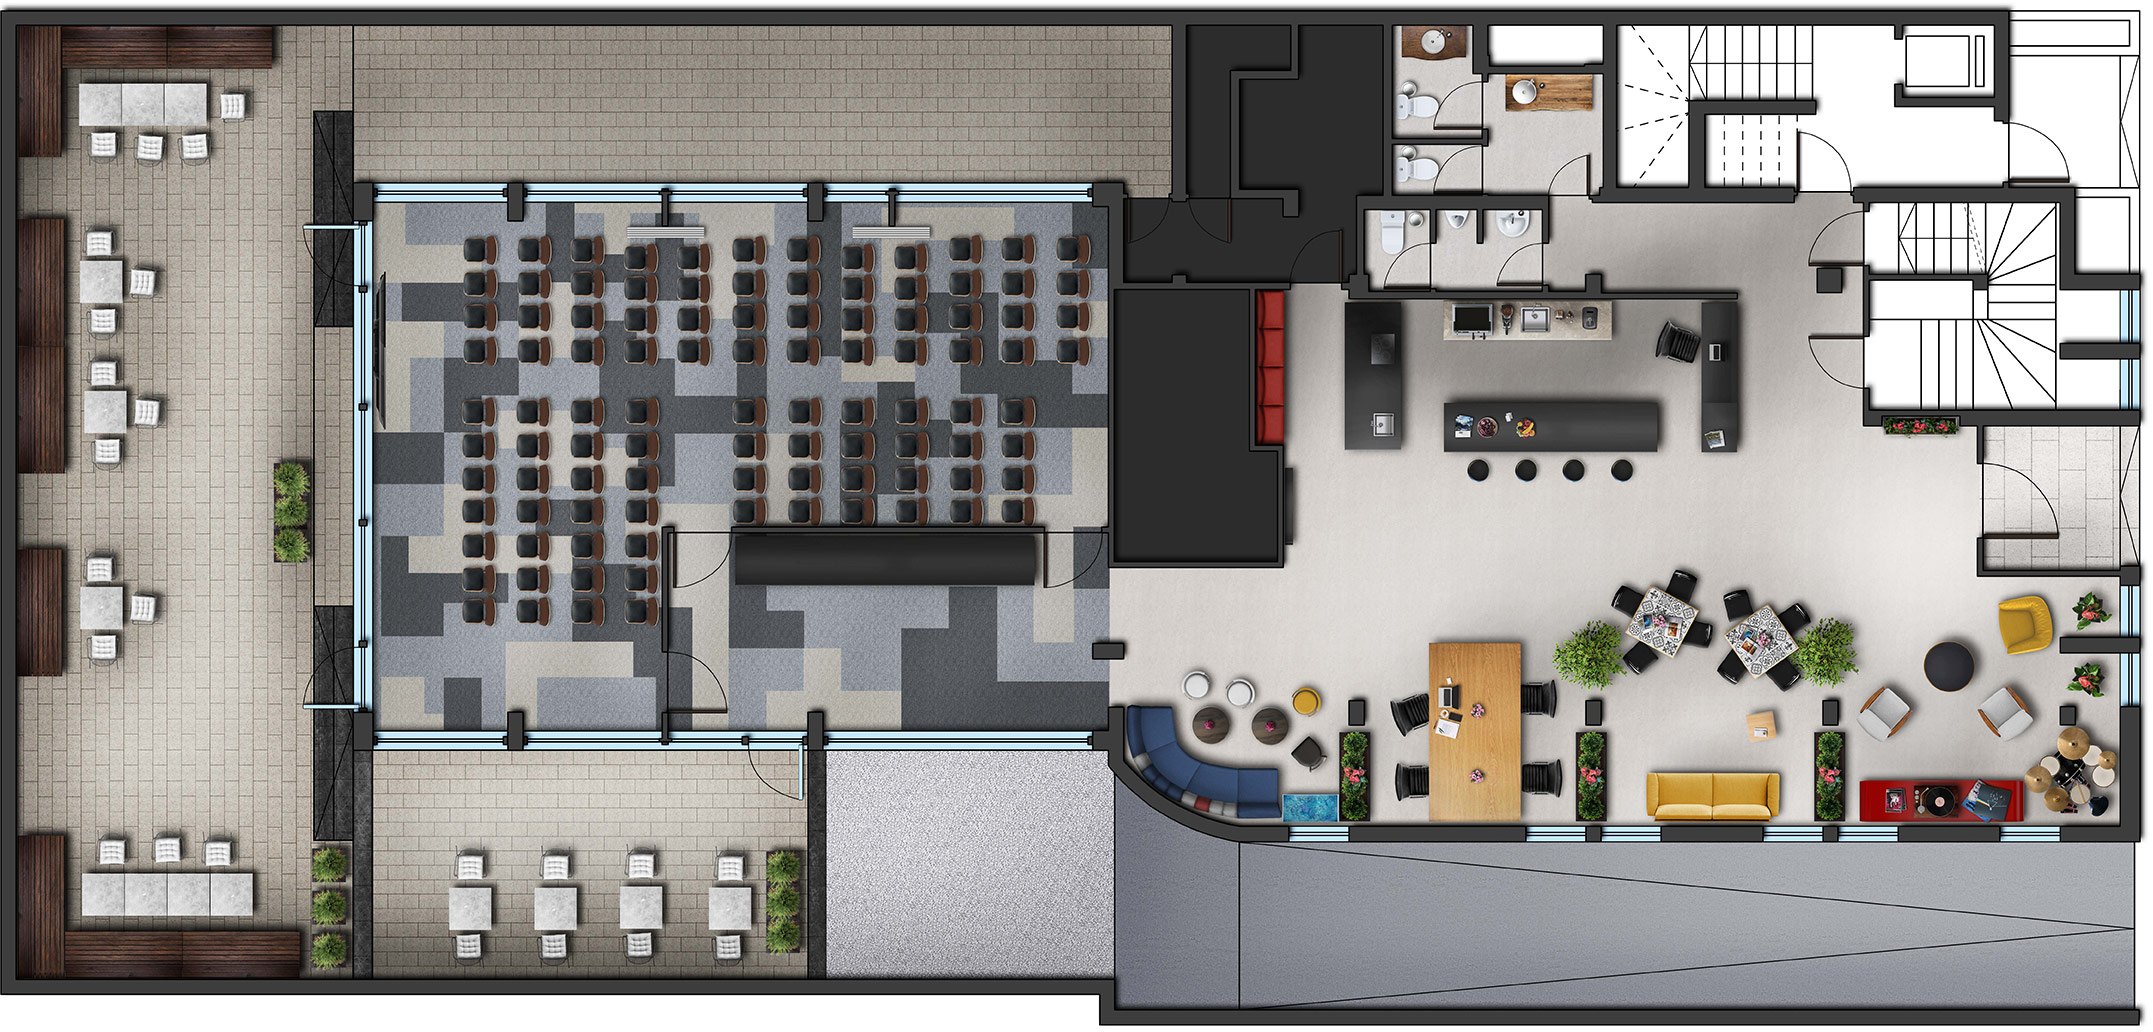 https://missia23.com/wp-content/uploads/2020/11/MISSIA23_floor_plan.jpg